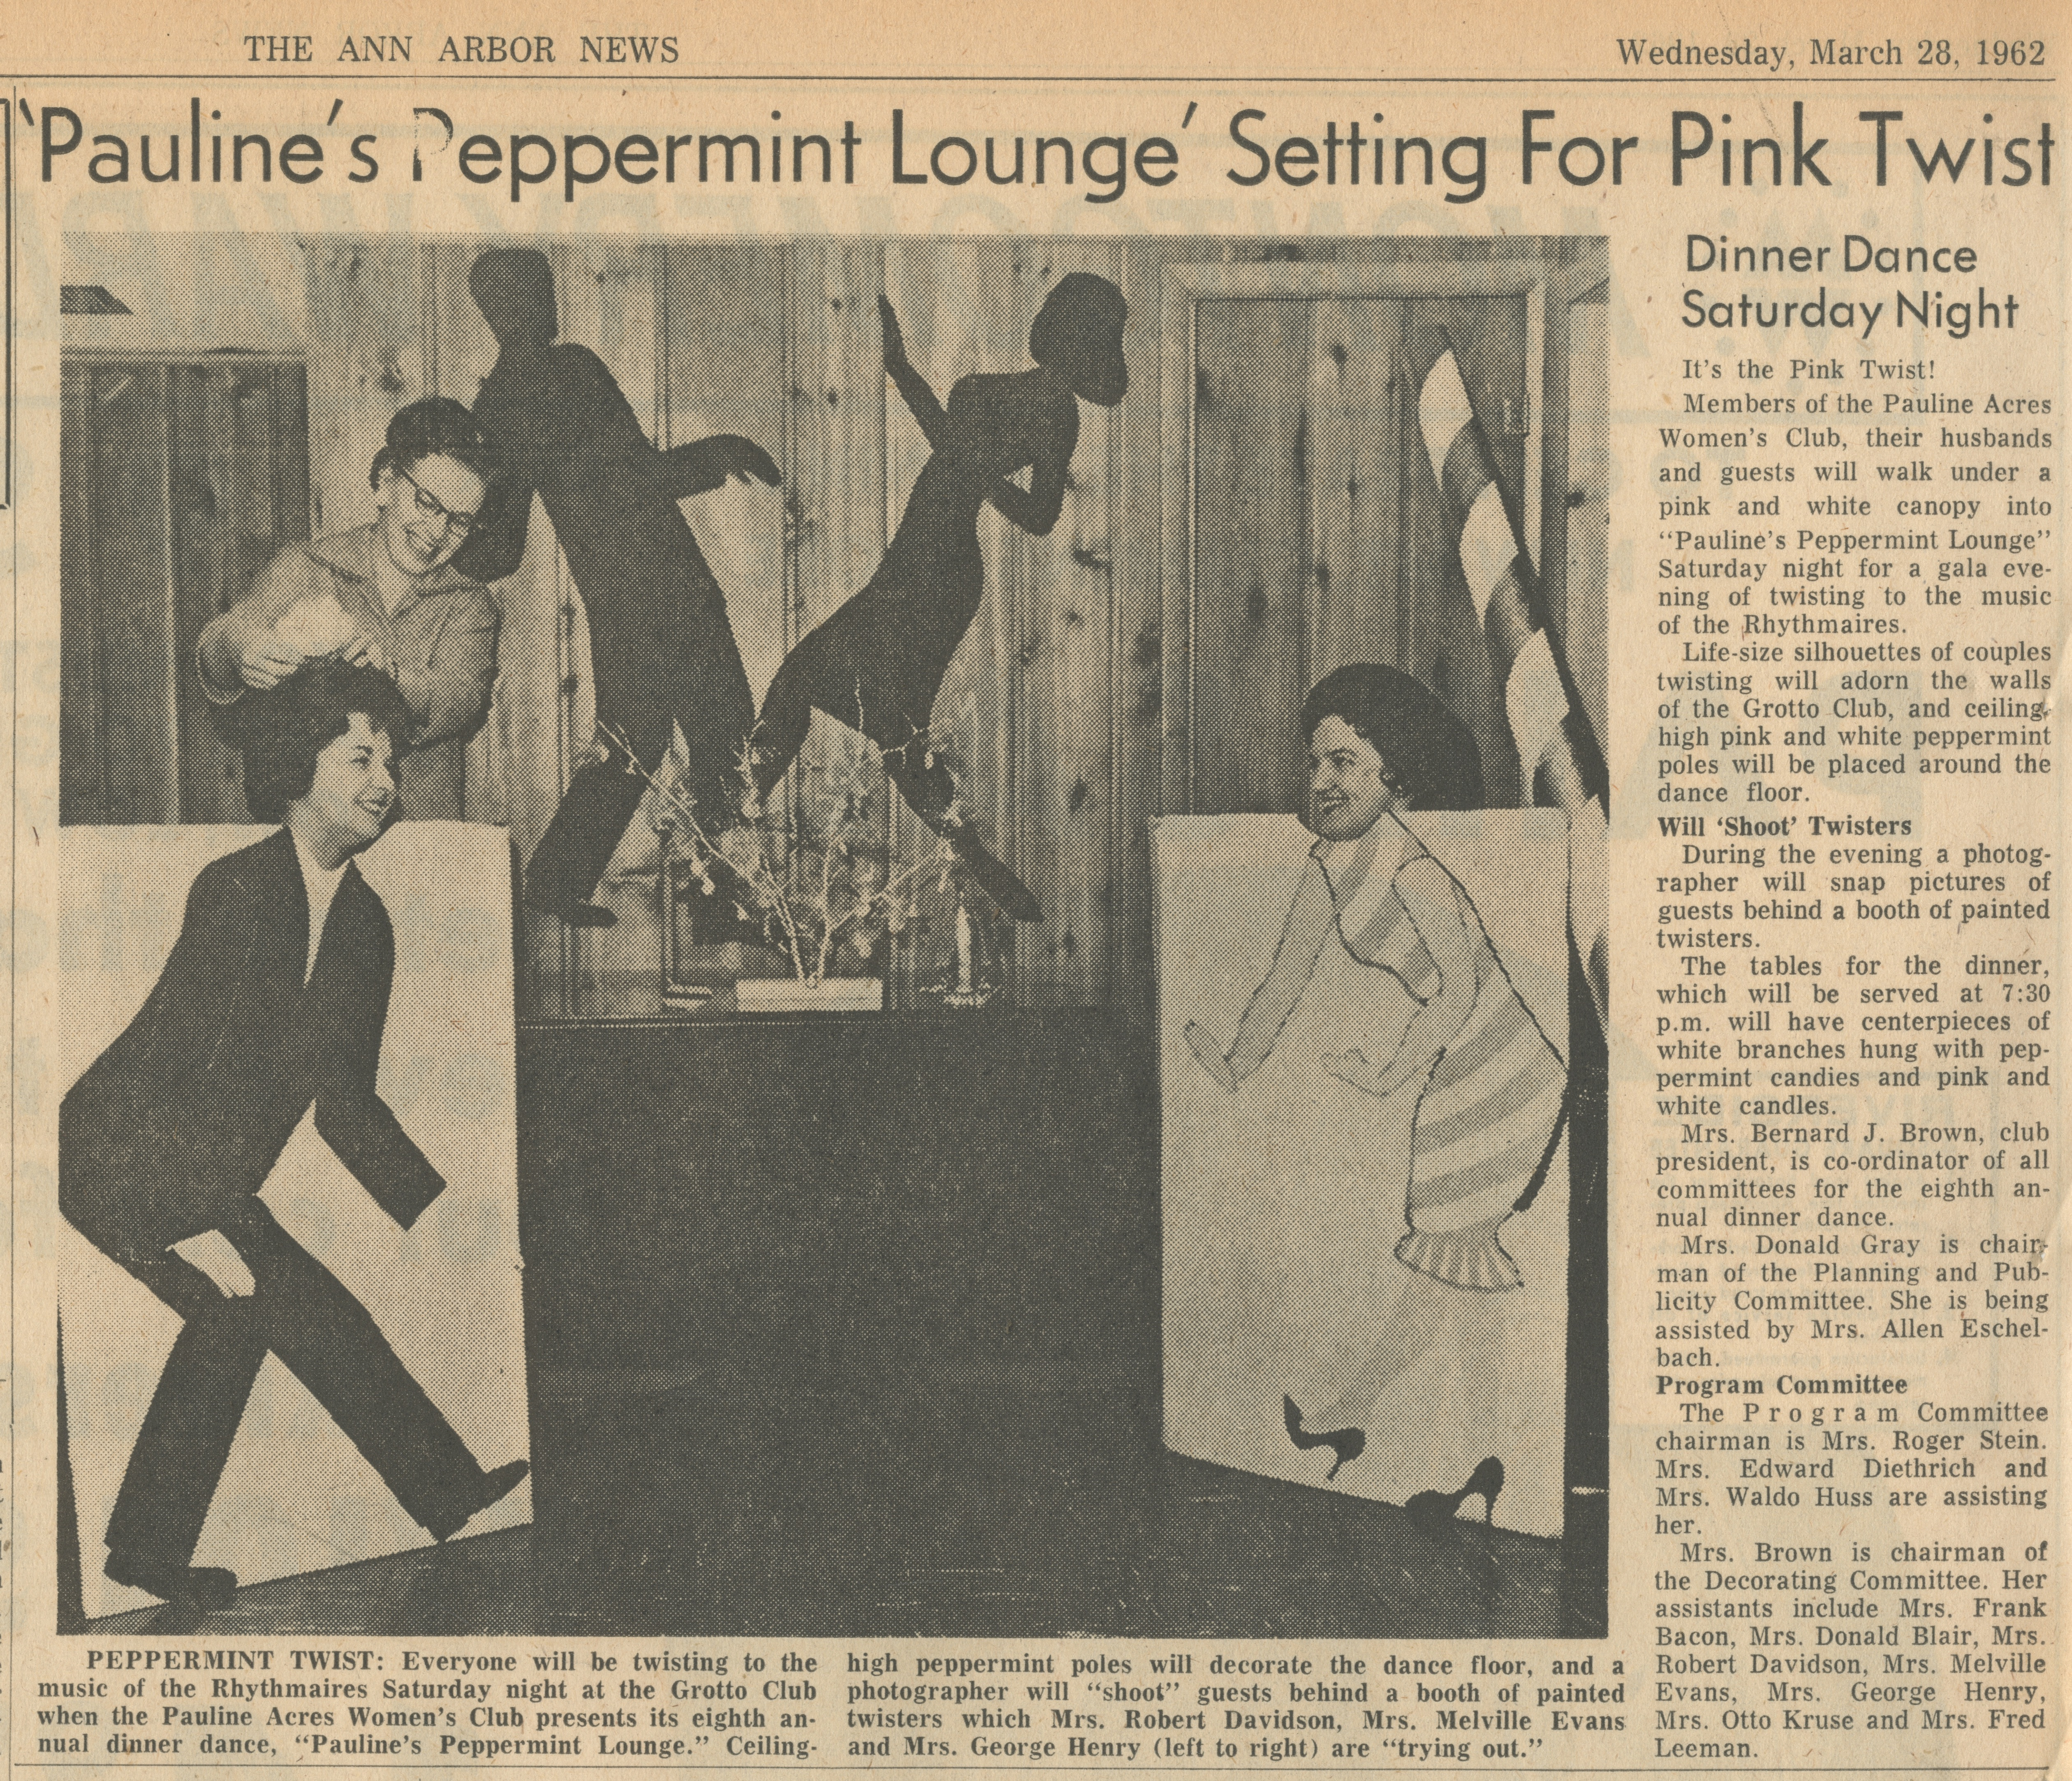 'Pauline's Peppermint Lounge' Setting For Pink Twist  image